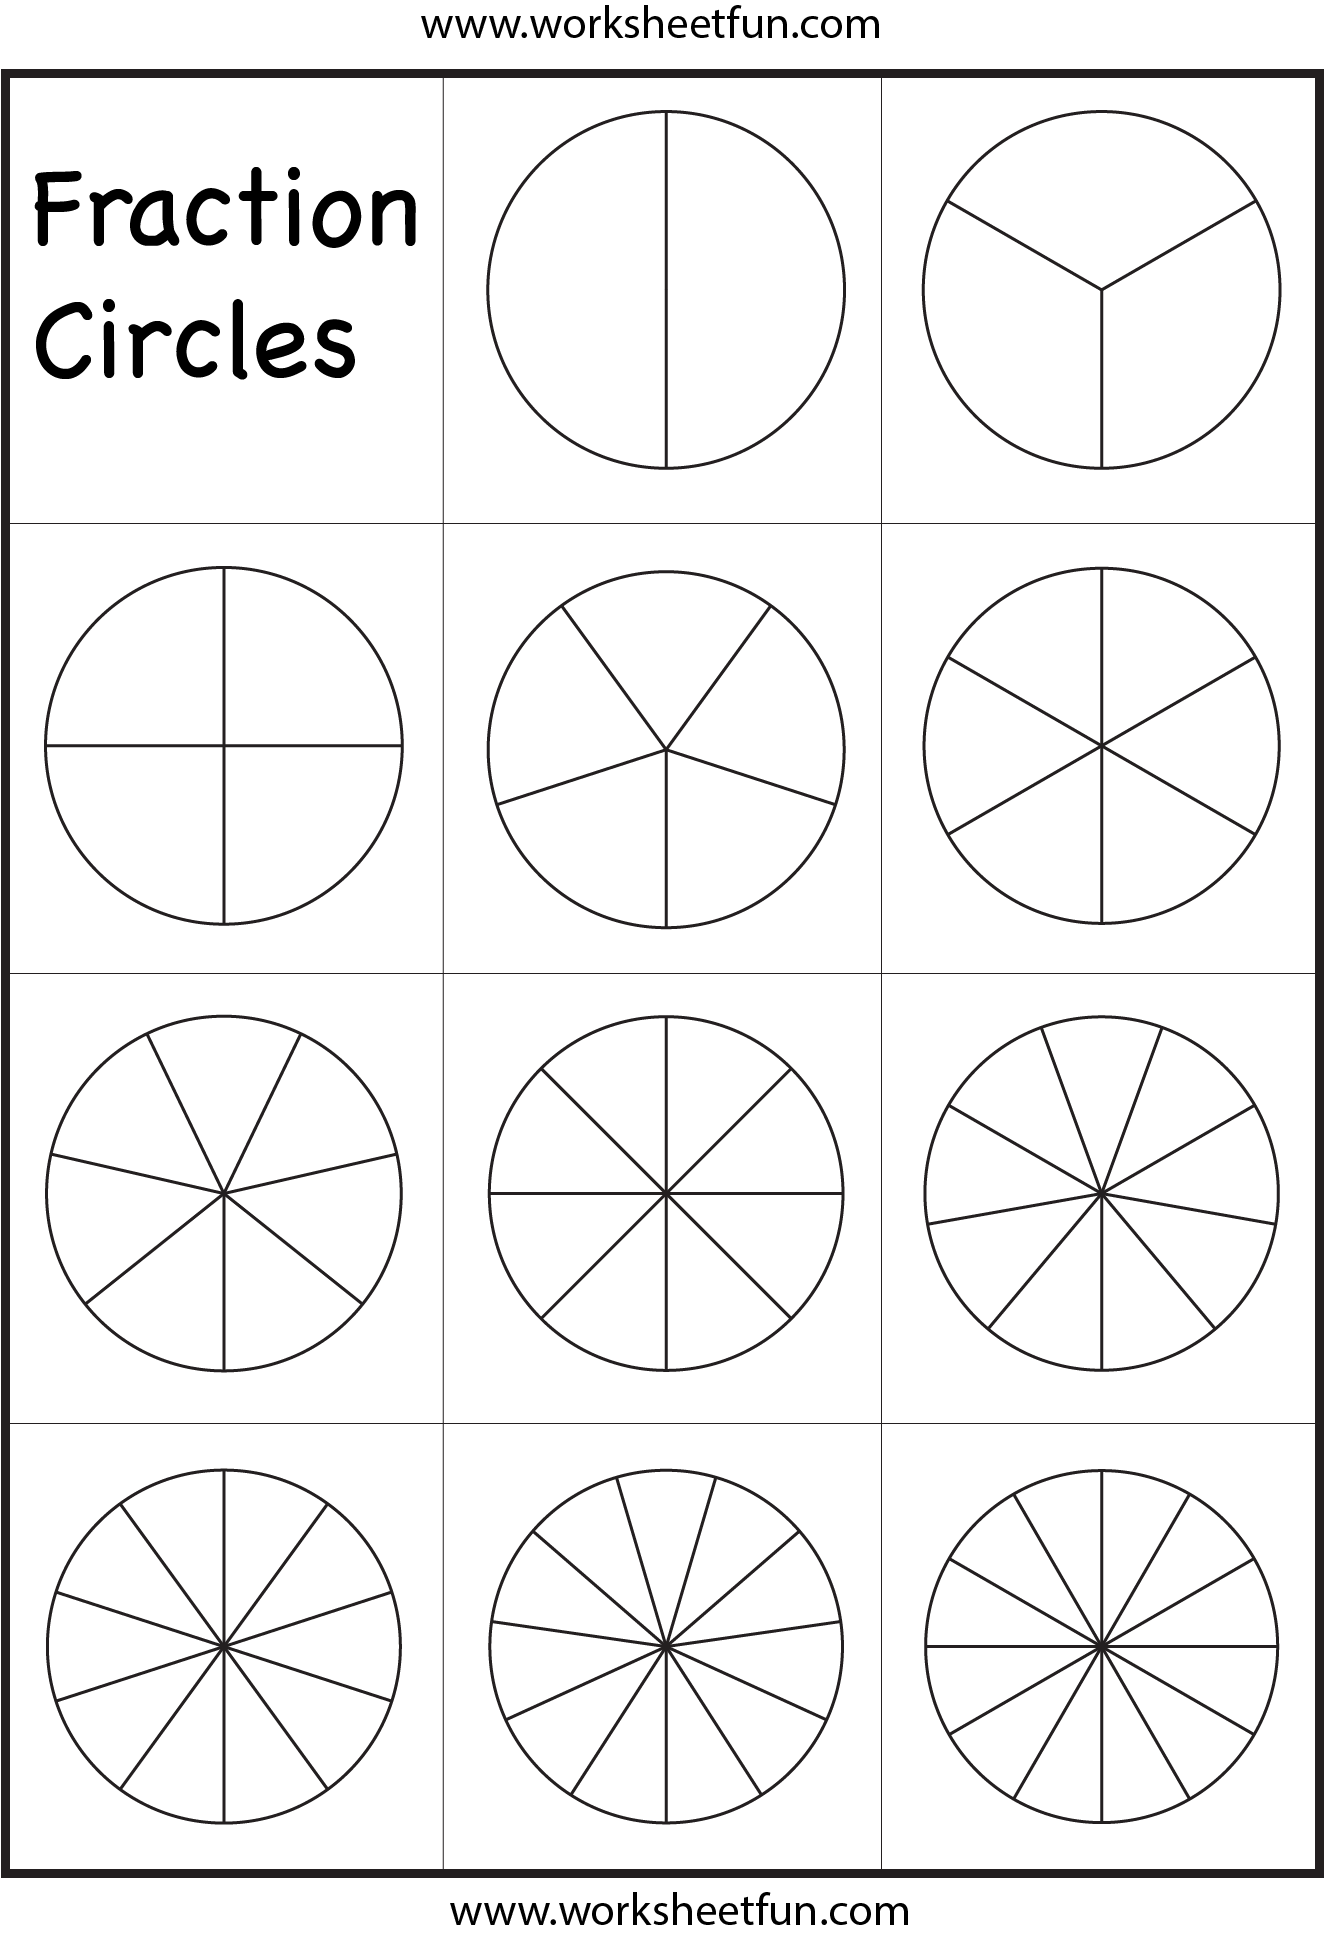 image regarding Printable Circle referred to as Portion Circles Template Printable Portion Circles 1